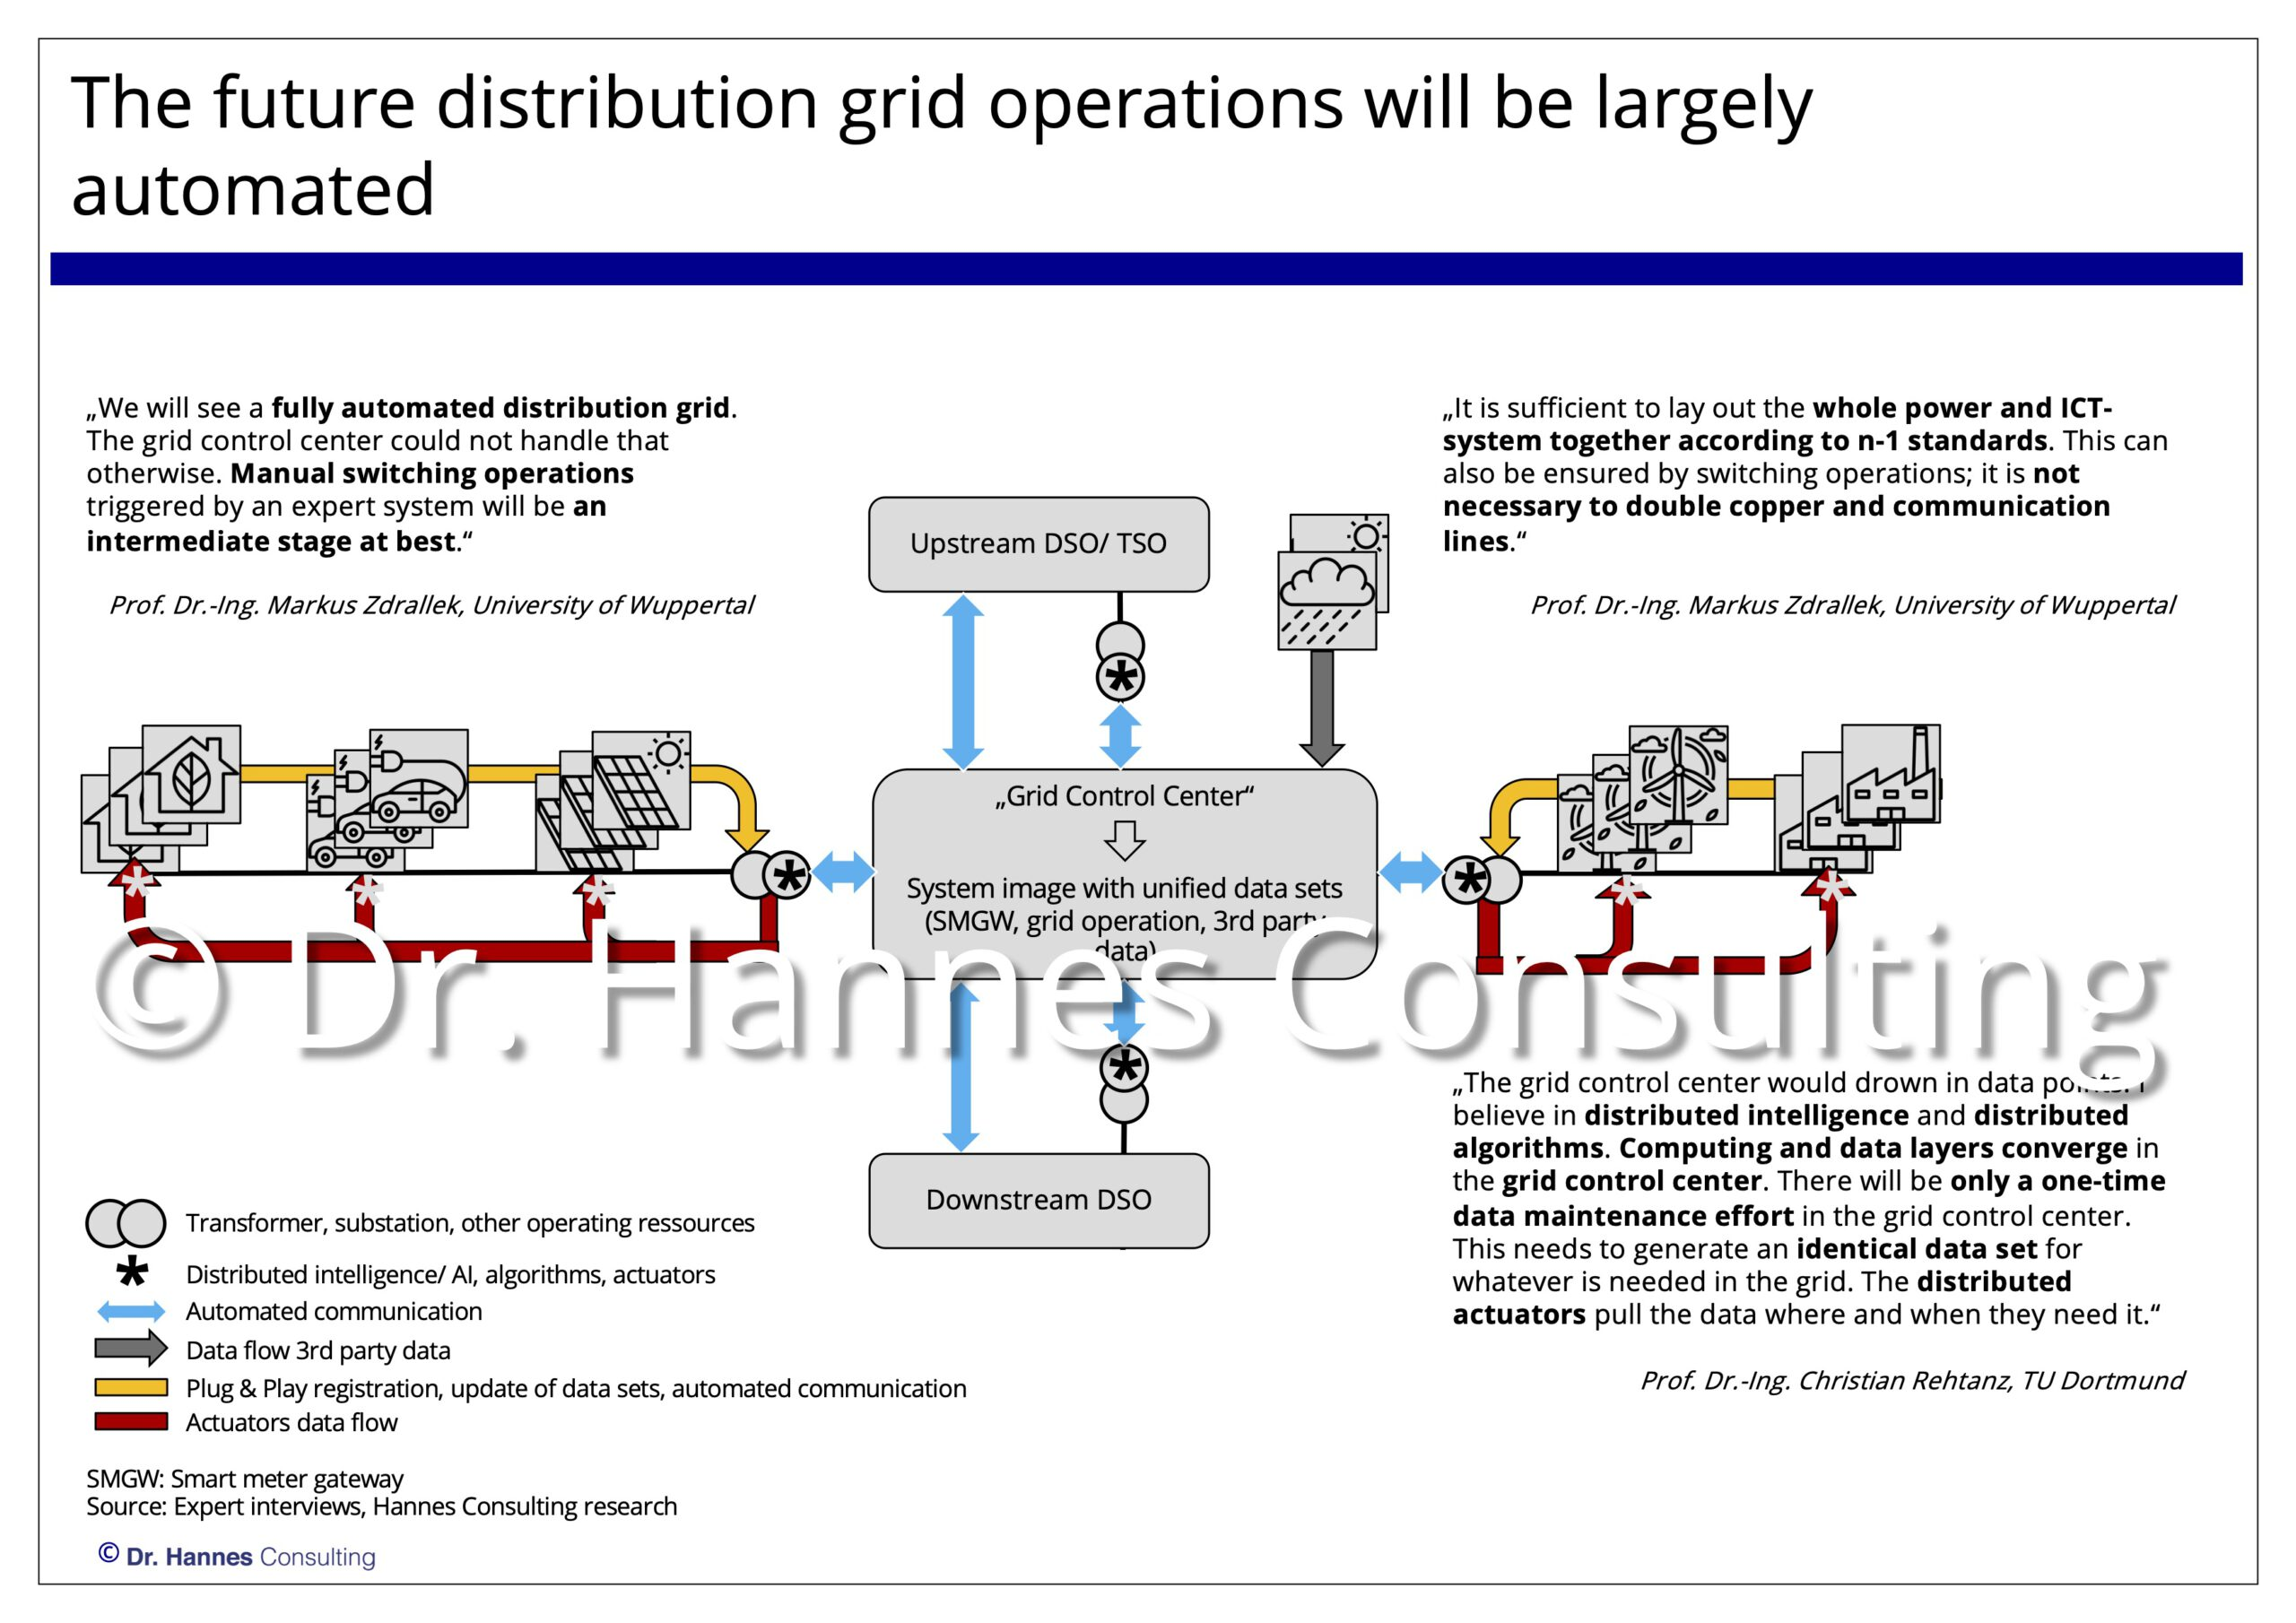 Business model options for digital distribution grid operations